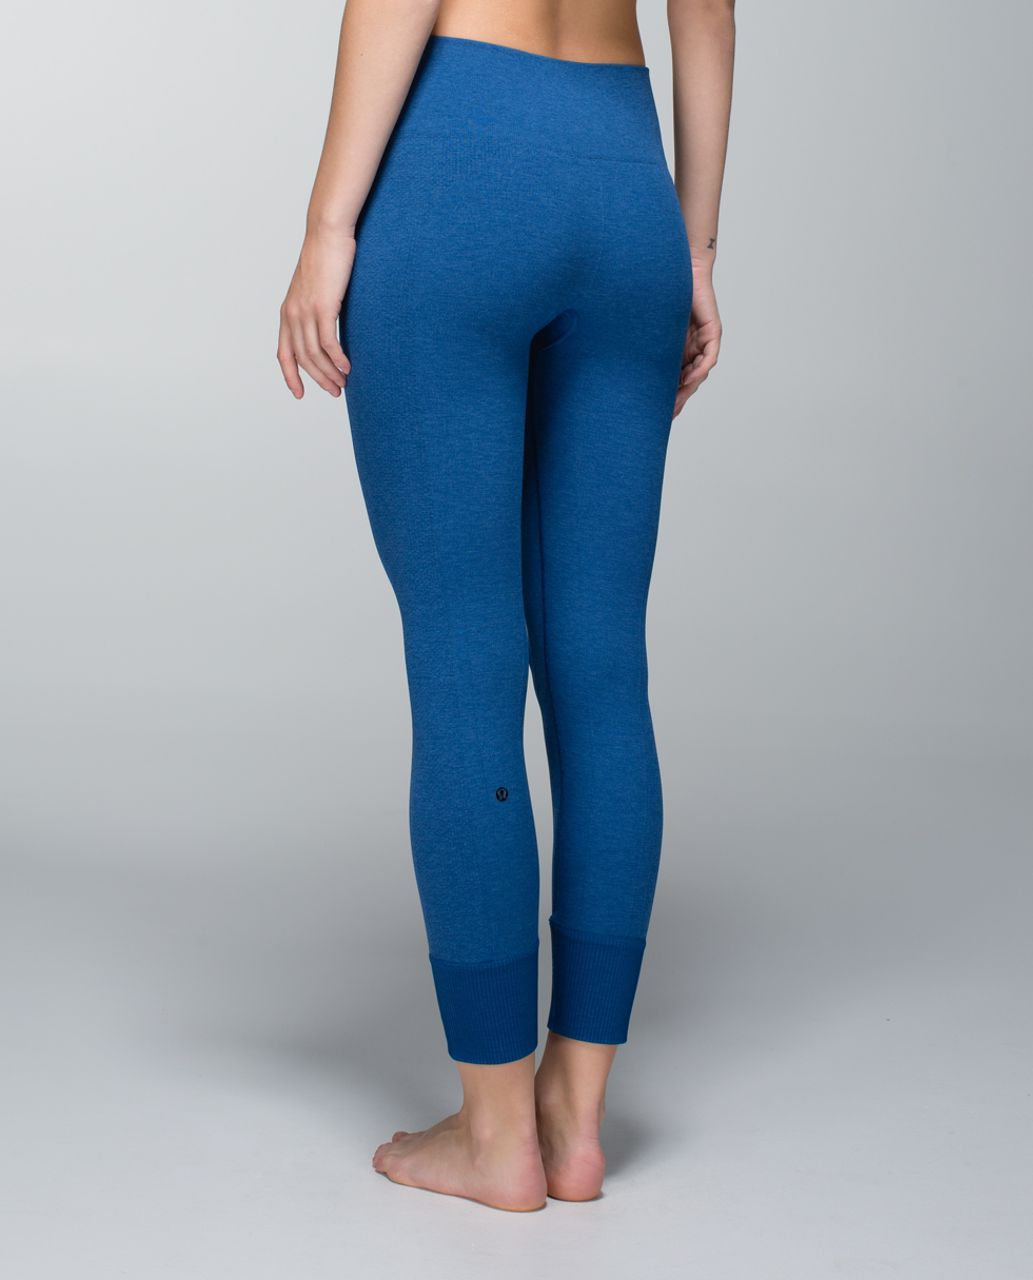 Lululemon Ebb To Street Pant - Heathered Rugged Blue